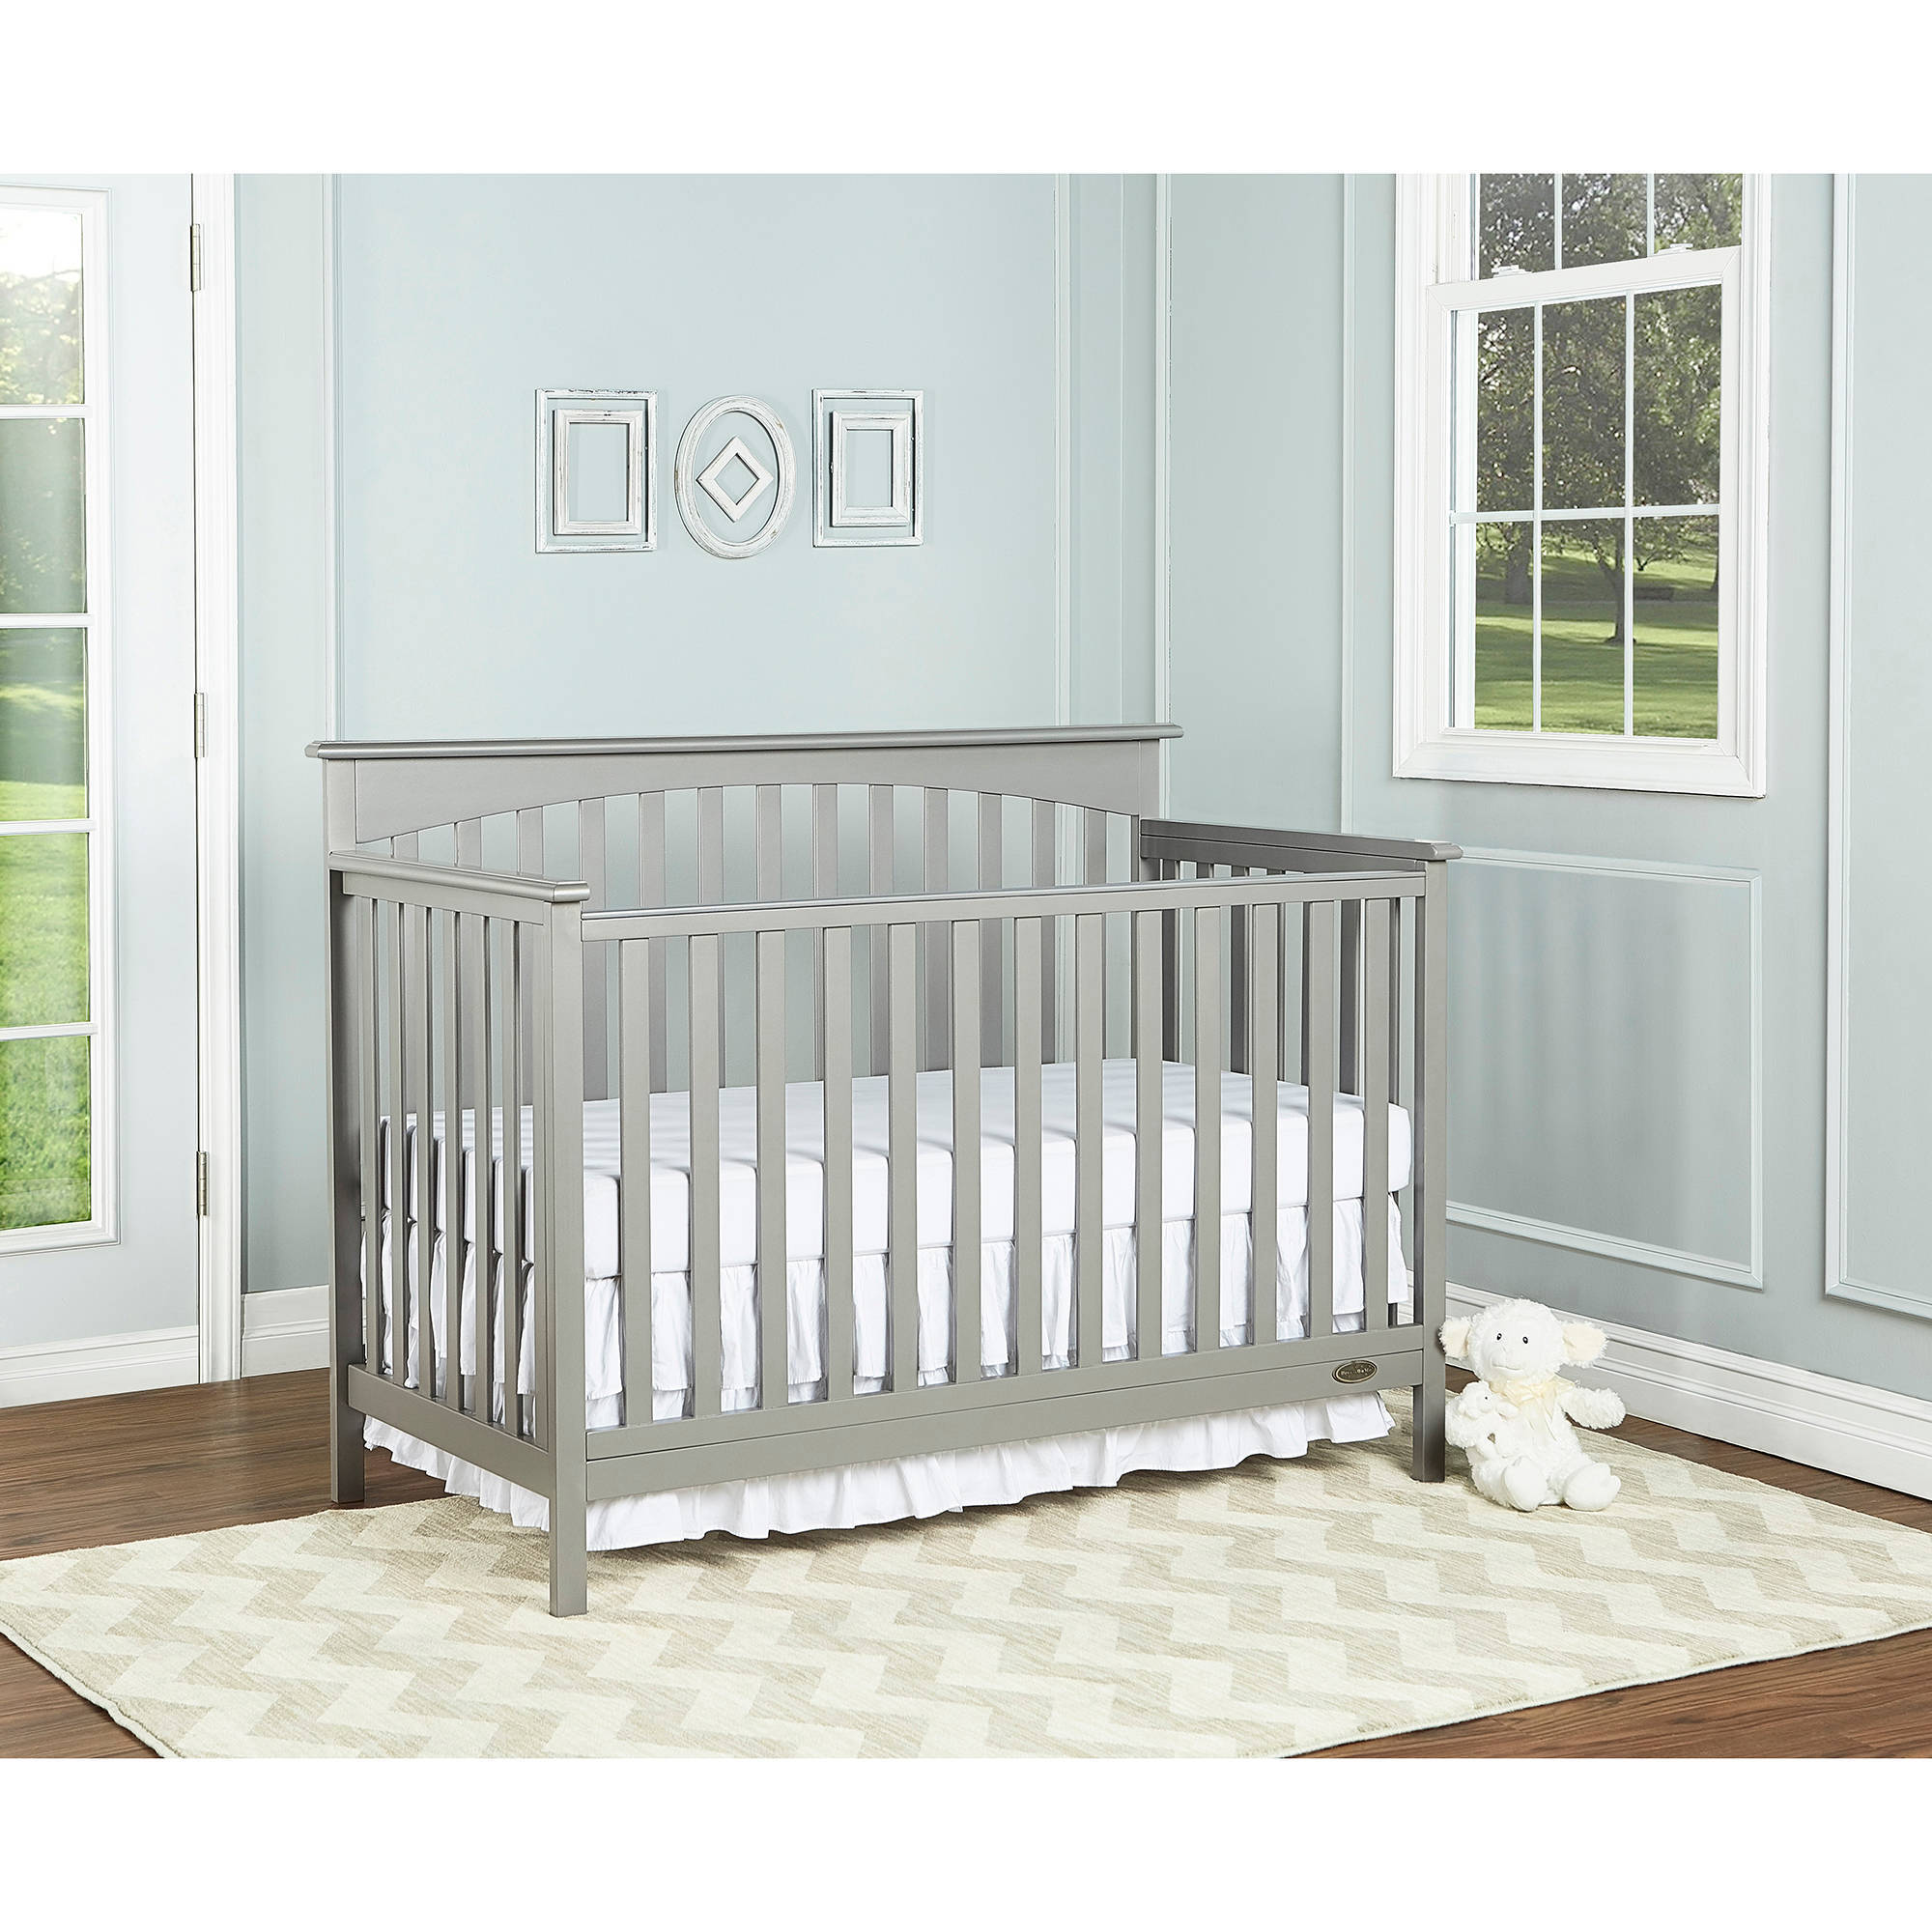 mini in cribs style s crib convertible elegant fascinating baby and furniture xfile of uncategorized trends ideas dream